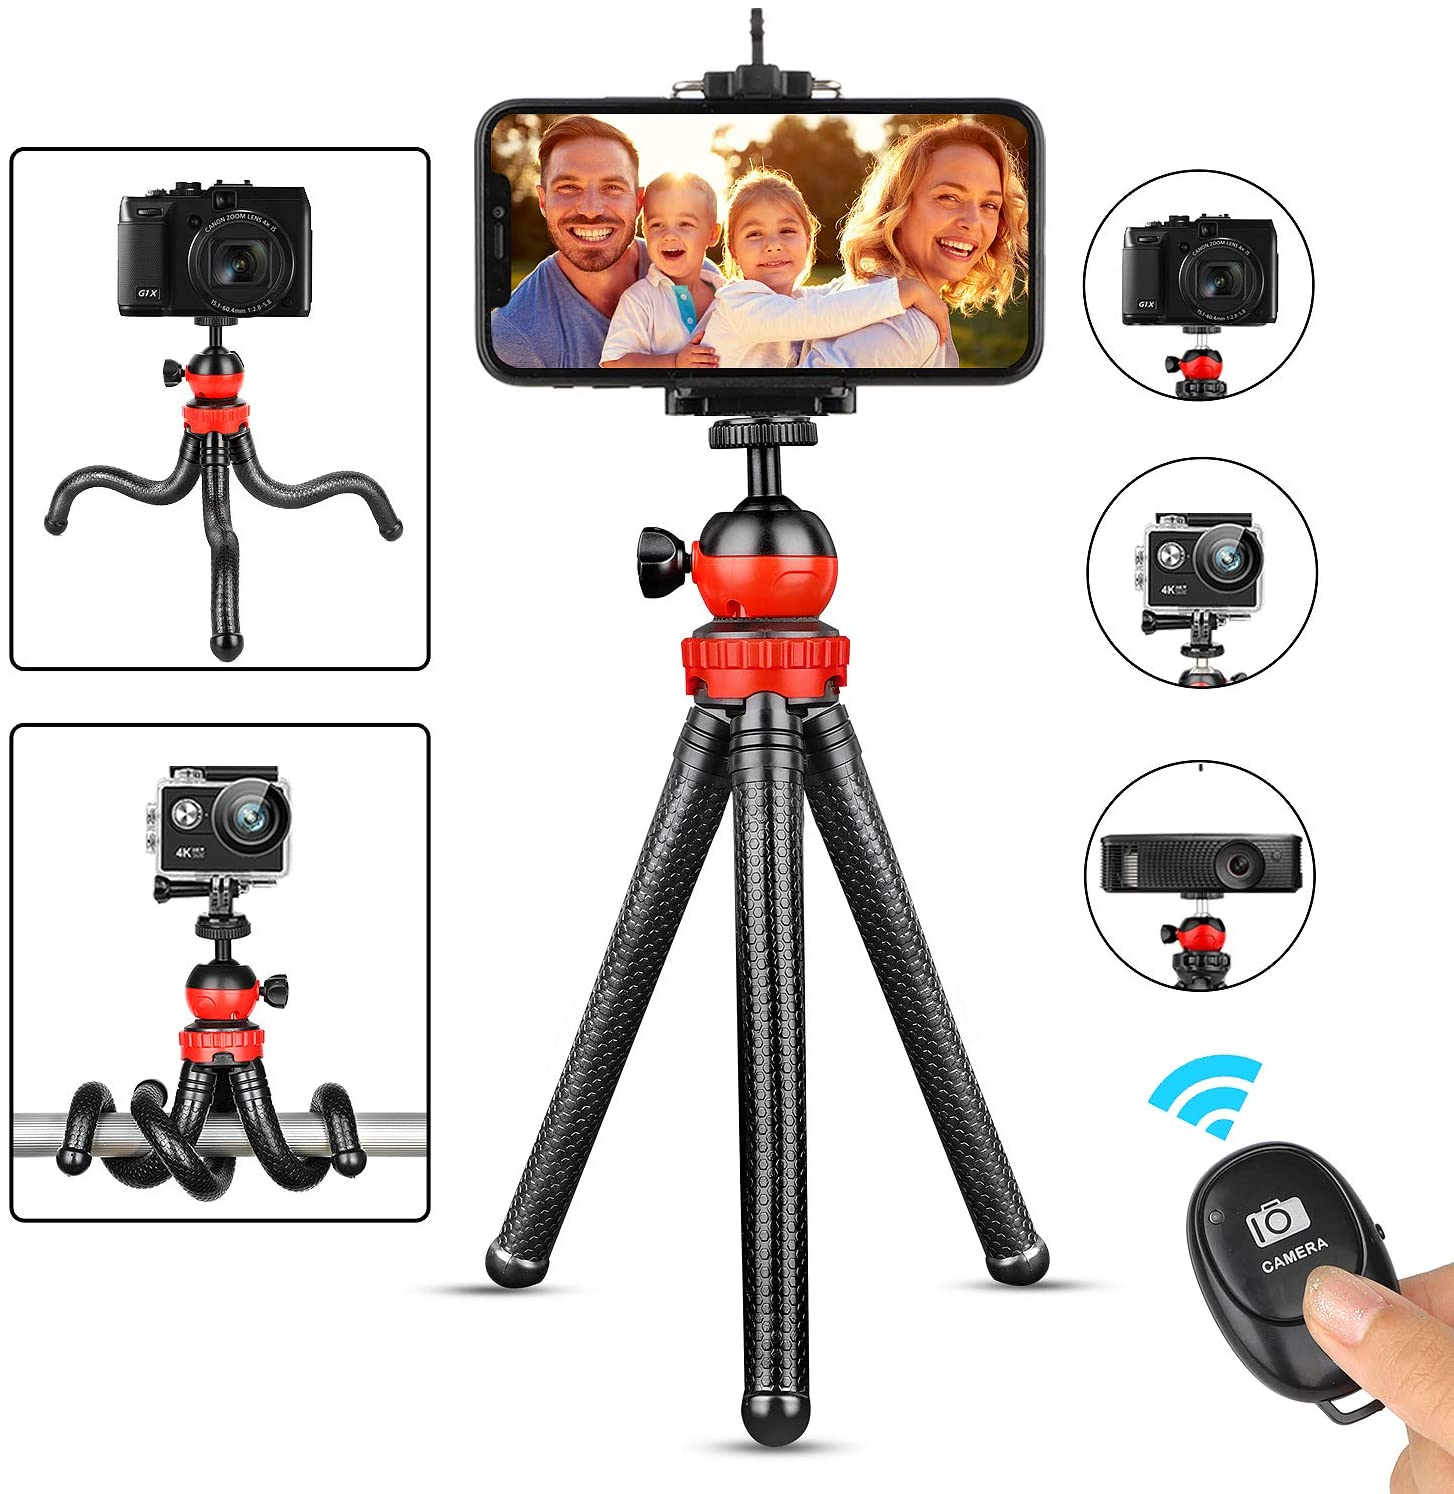 Phone Tripod, Portable Cellphone Camera Tripod Stand with Wireless Remote, Flexible Tripod Stand for Selfies/Vlogging/Streaming/Photography/Recording Compatible with iPhone Android Phone Gopro